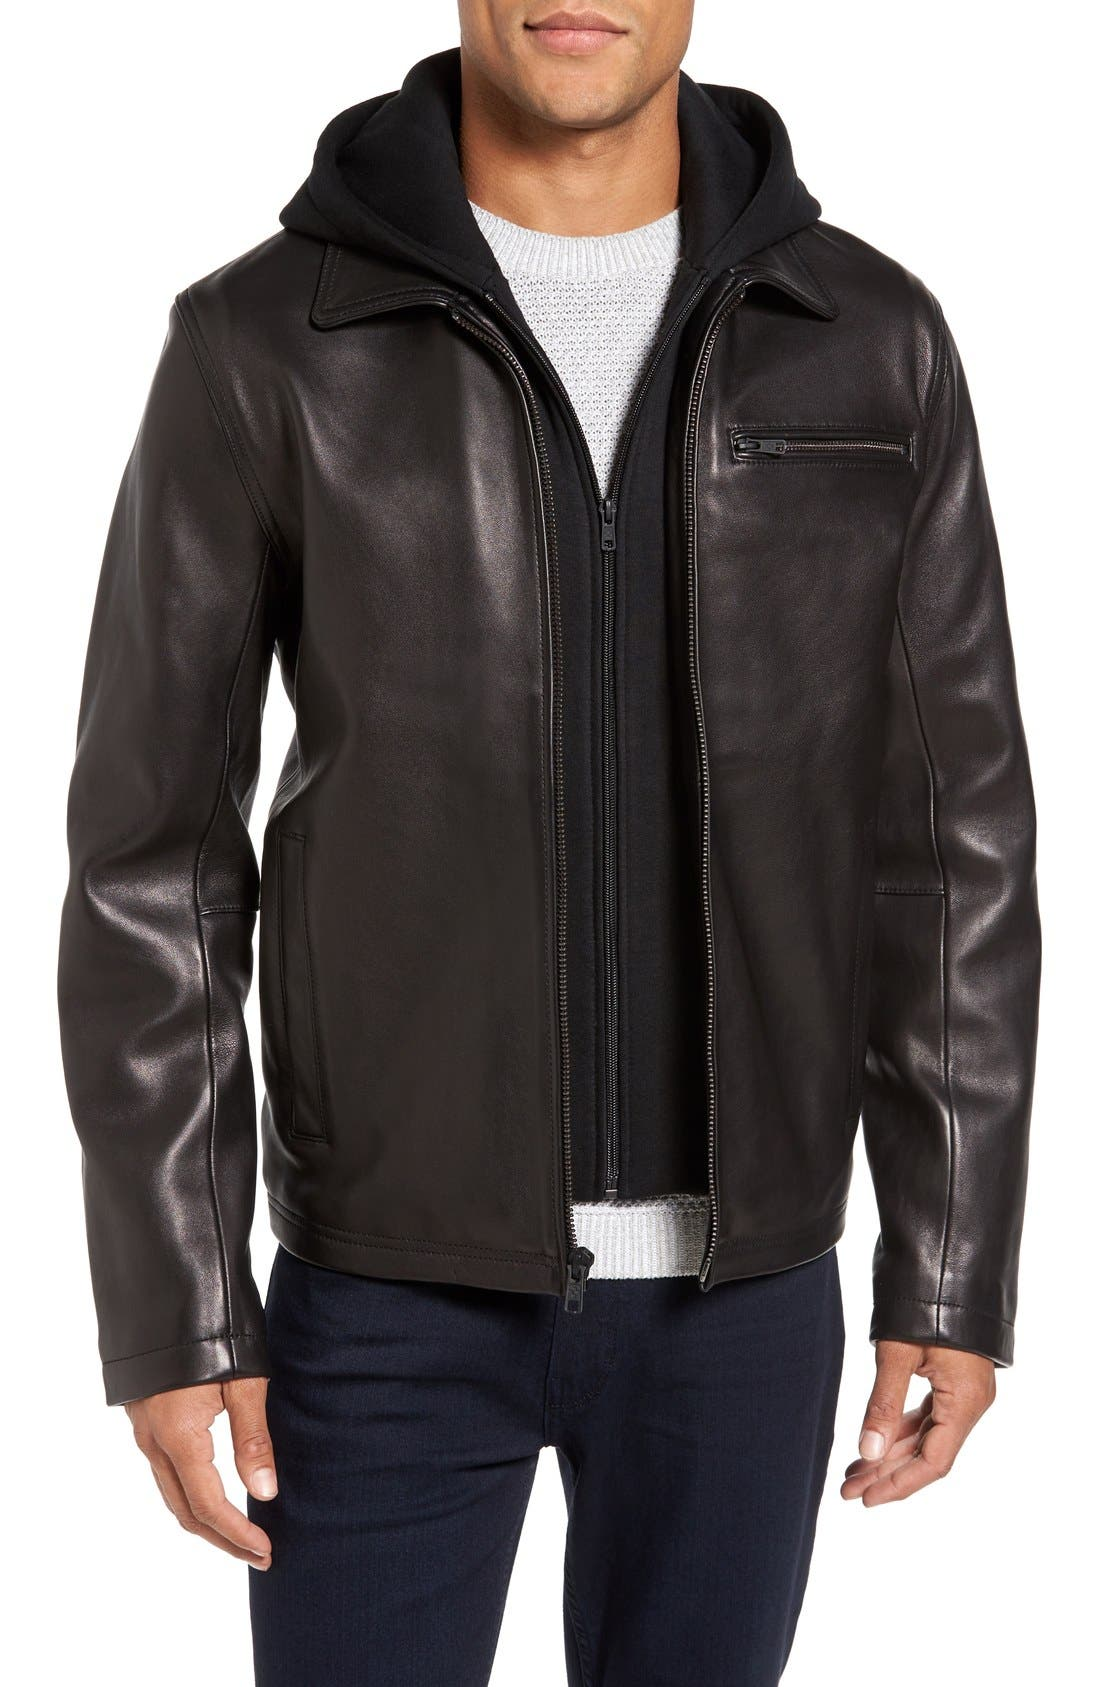 Vince Camuto Leather Jacket with Removable Hooded Bib